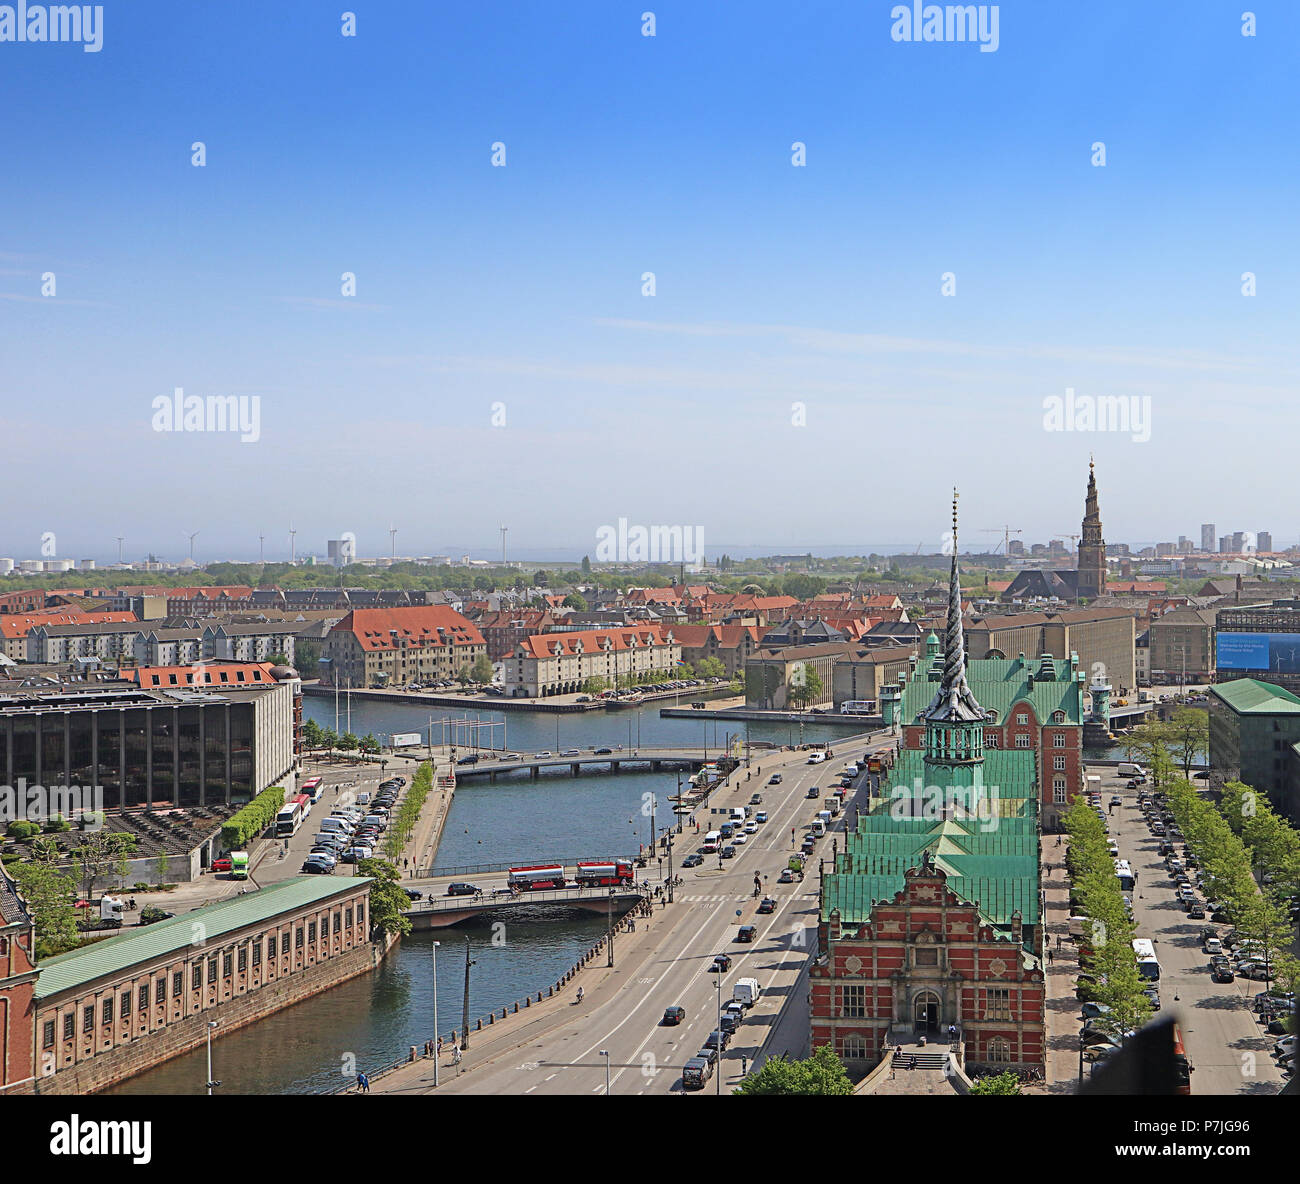 COPENHAGEN, DENMARK - MAY 17, 2018 - Panoramic view of Copenhagen from the  tower of Christiansborg Palace, house of the danish Parliament: on the rig - Stock Image